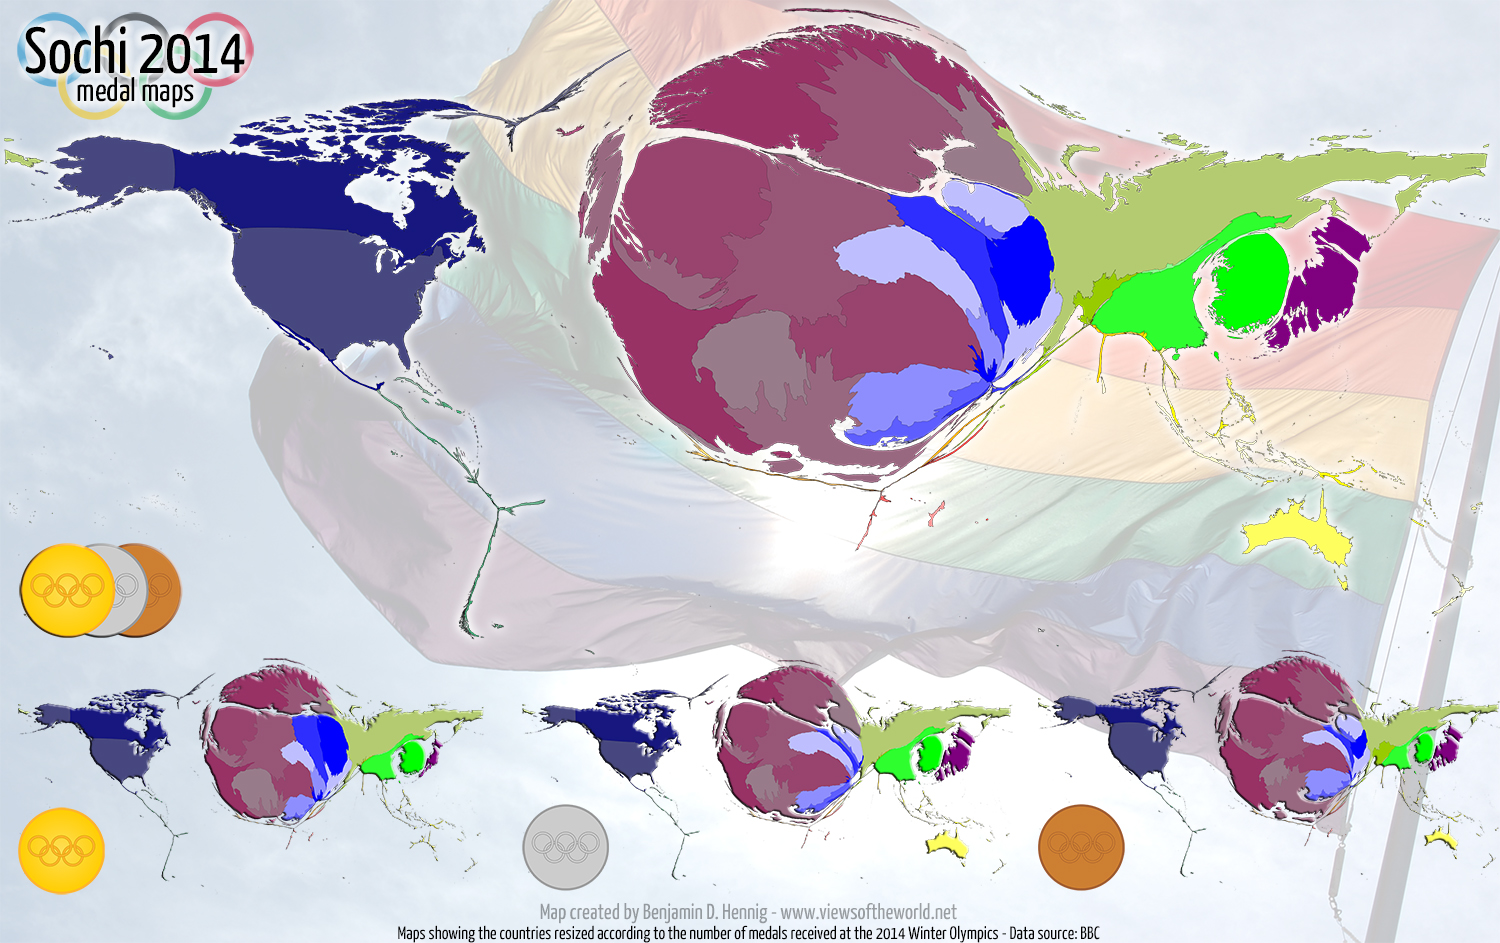 Map / Cartogram of the medal distribution at the 2014 Winter Olympics in Sochi, Russia